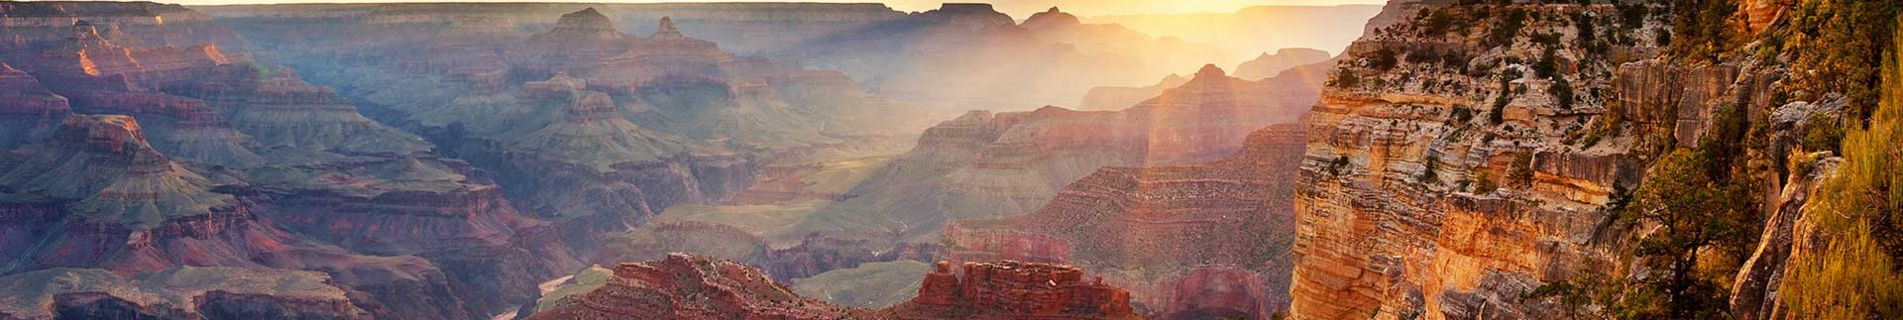 South Rim of Grand Canyon at Sunset